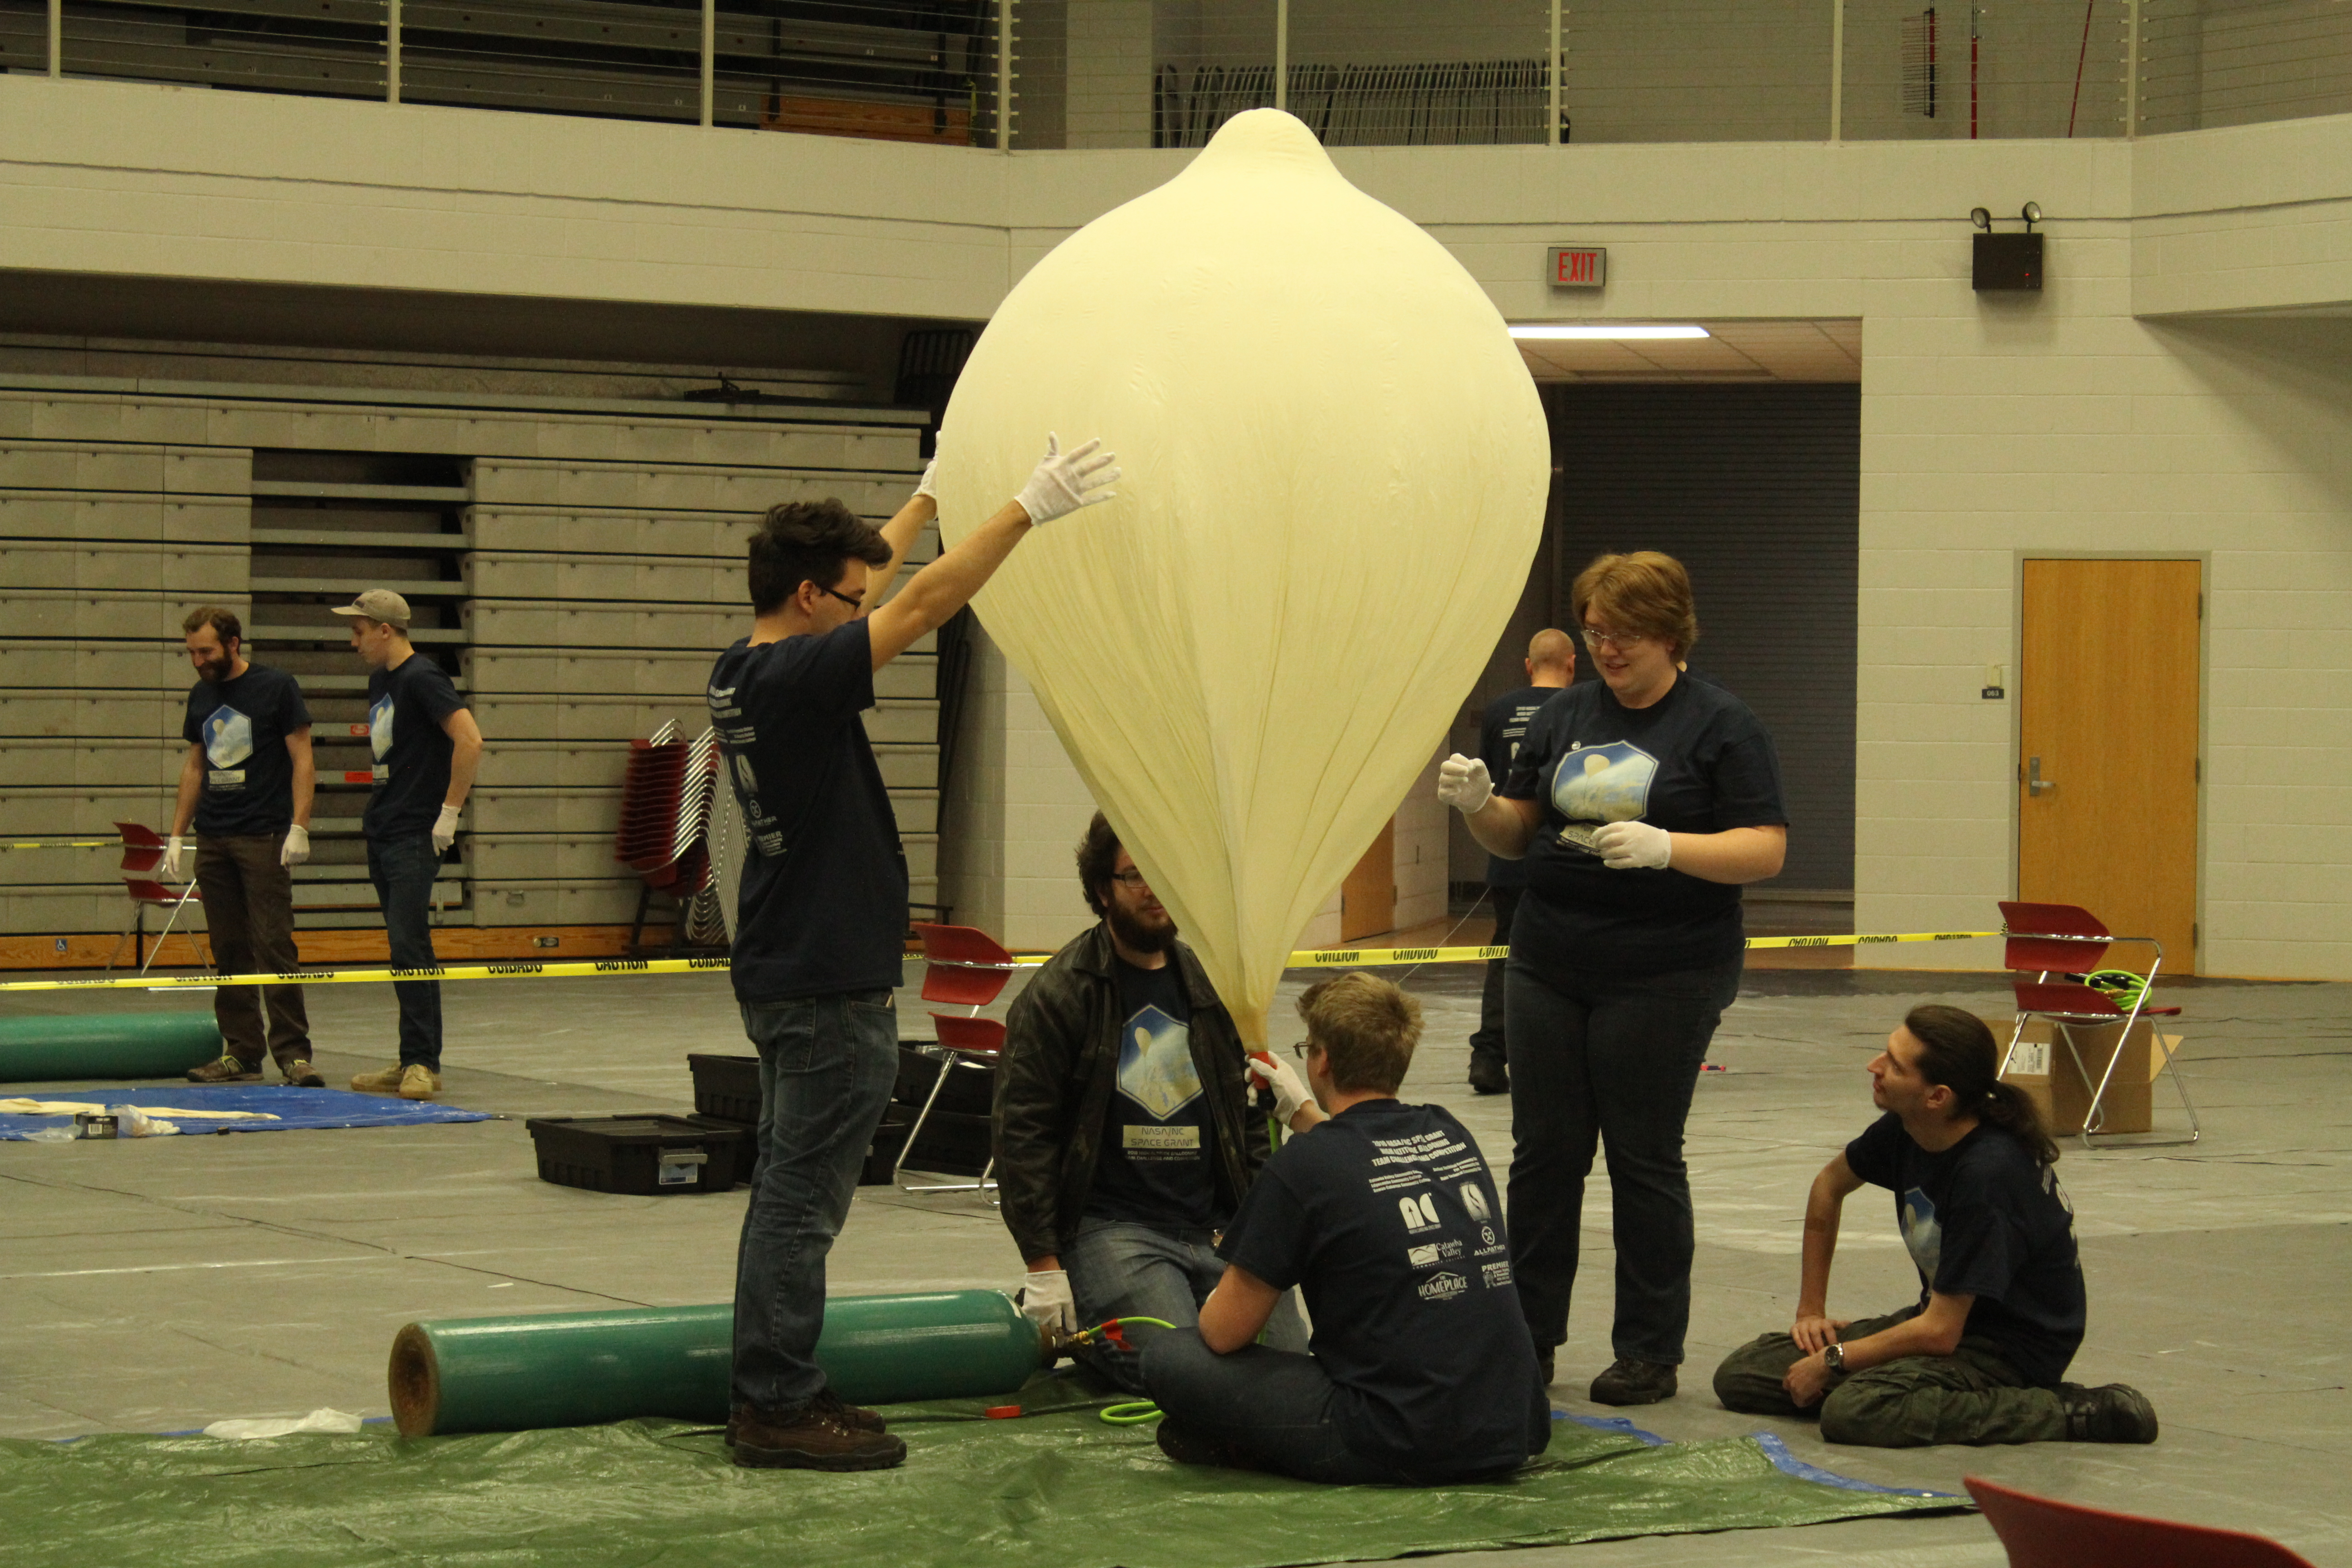 the 2018 Community College High Altitude Ballooning